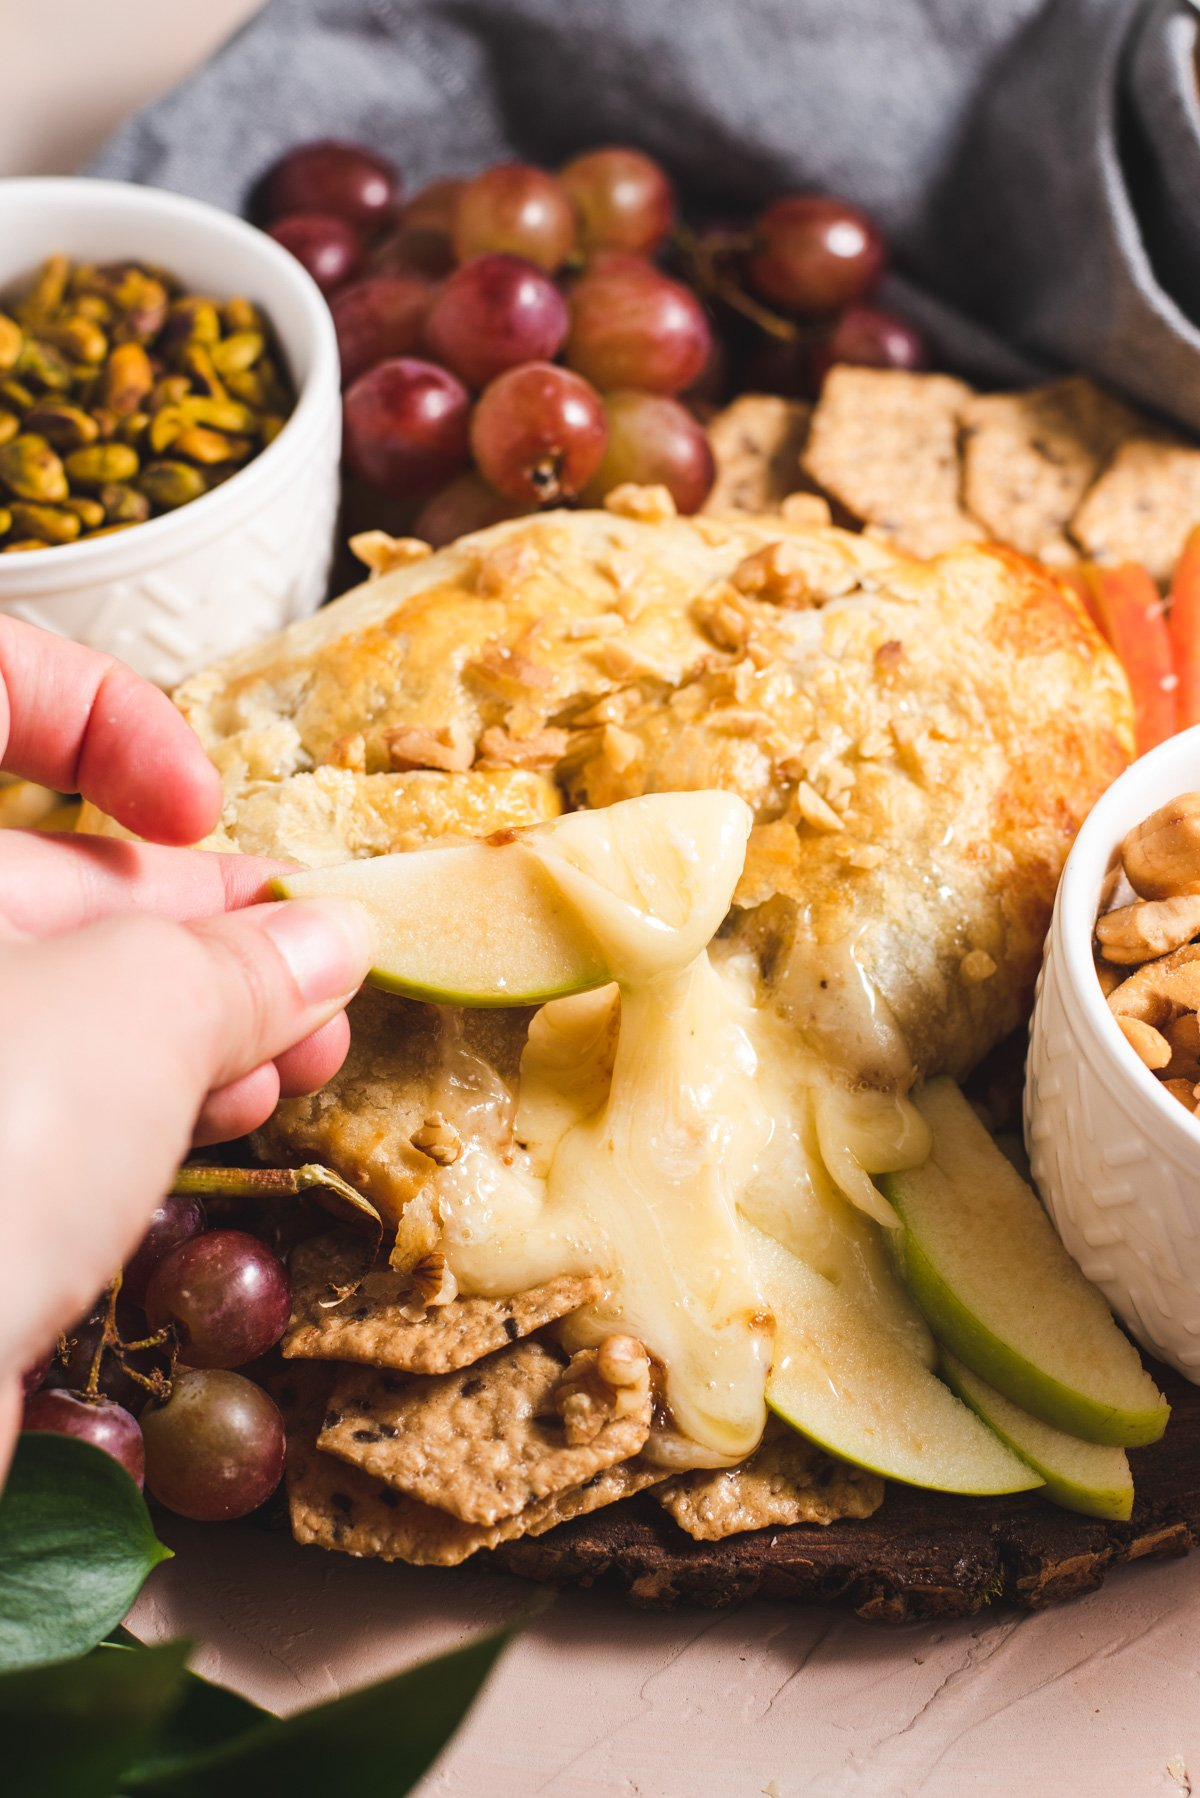 Hand dipping green apple in melted brie surrounded by nuts and fruit